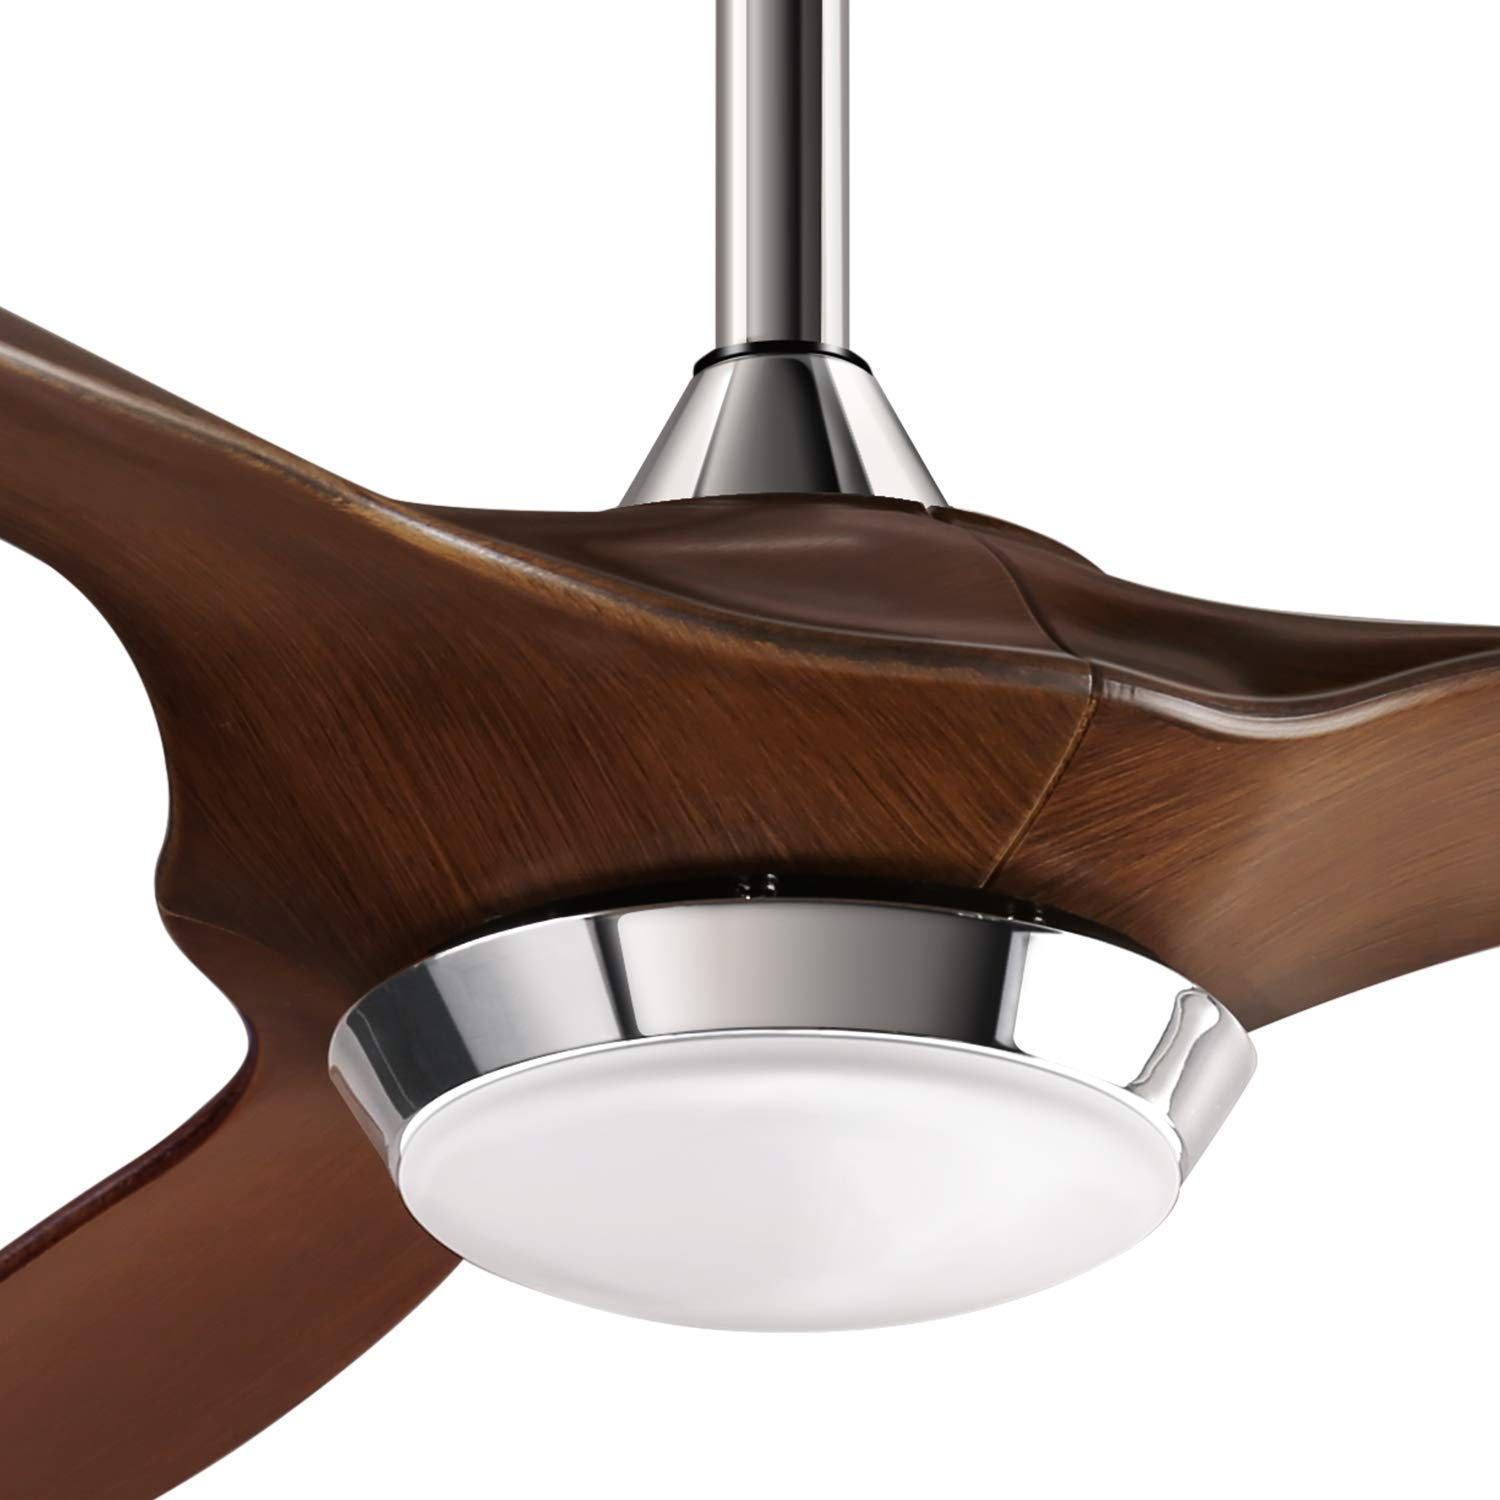 reiga 52-in Ceiling Fan with LED Light Kit Remote Control Modern Blades Noiseless Reversible Motor 6-speed, 3 color Temperature Switch hand-painted